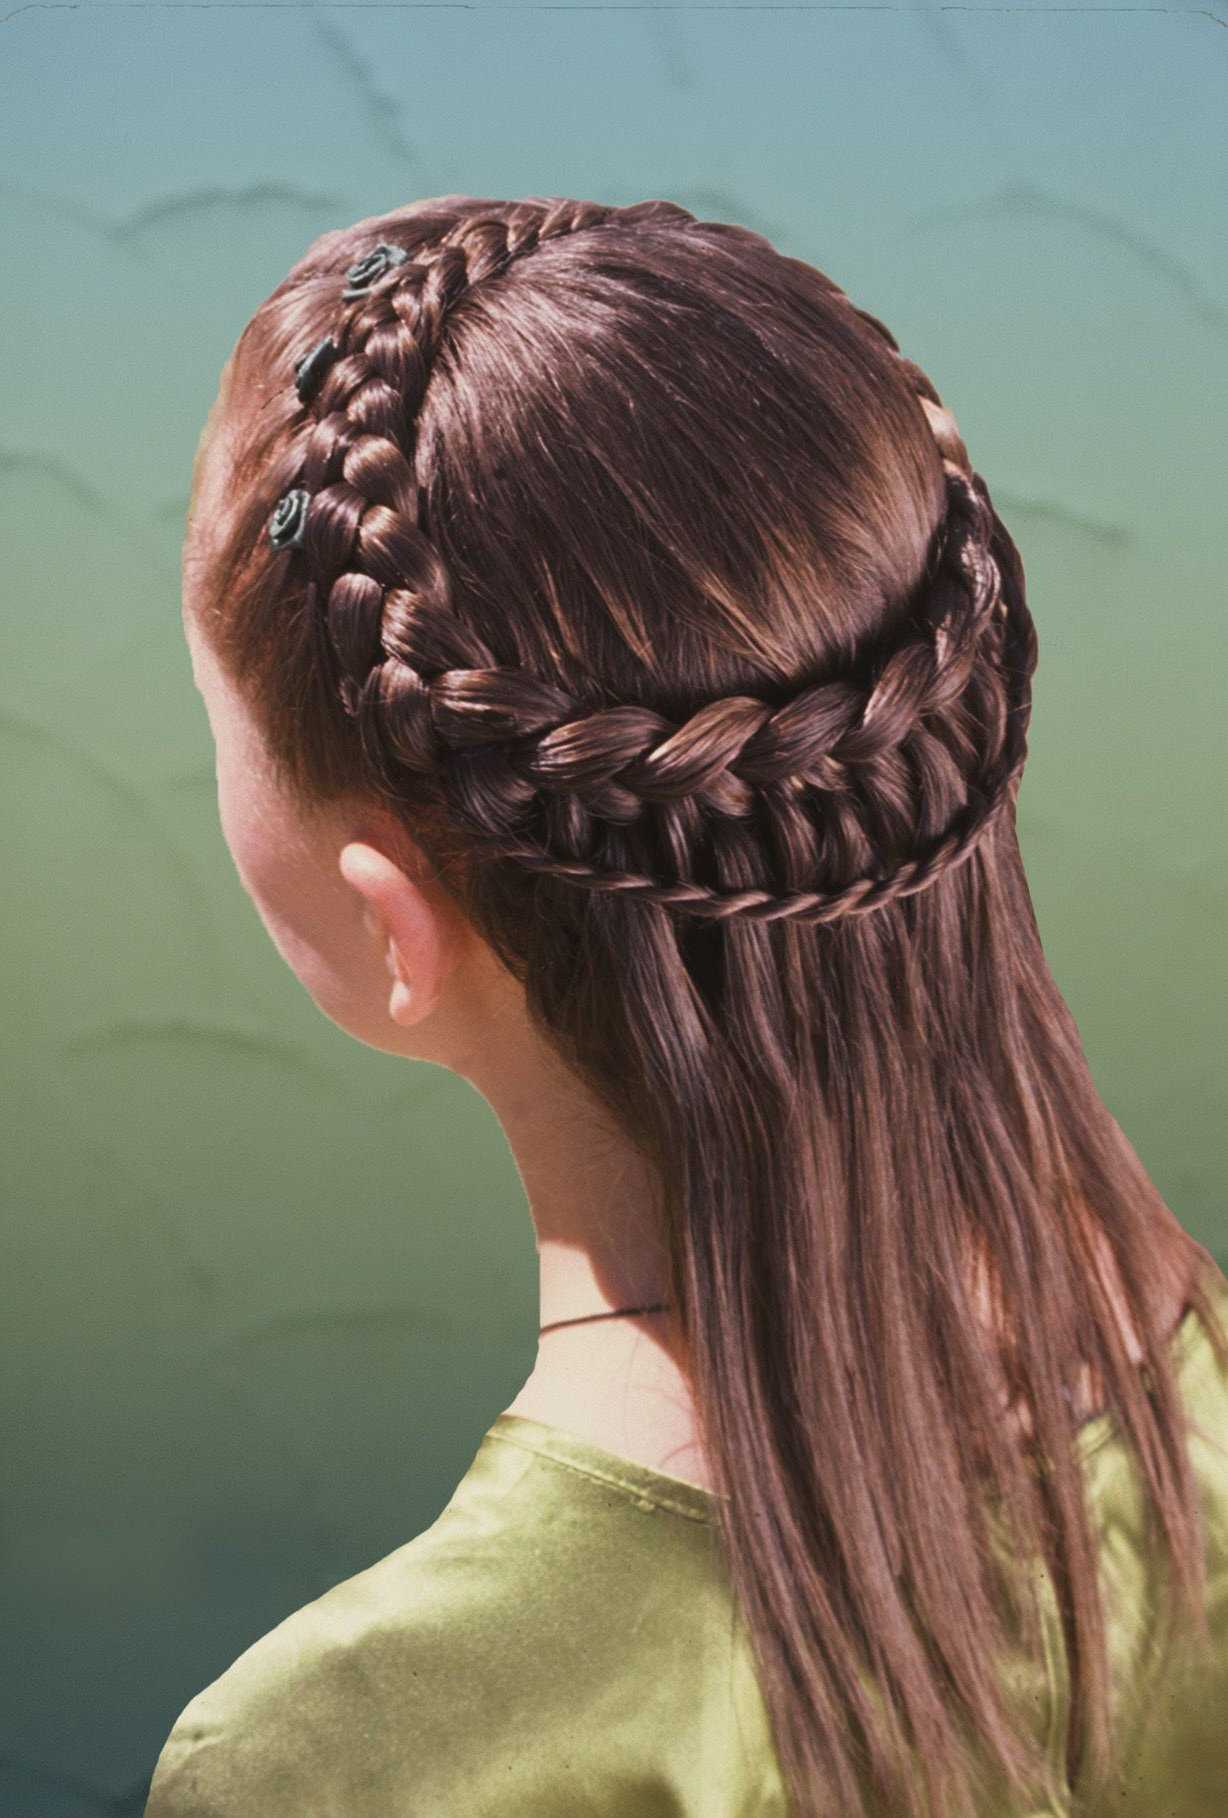 Pin About Braided Hairstyles On Hair. In 2020 Pertaining To Fashionable Asymmetrical French Braid Hairstyles (Gallery 12 of 20)